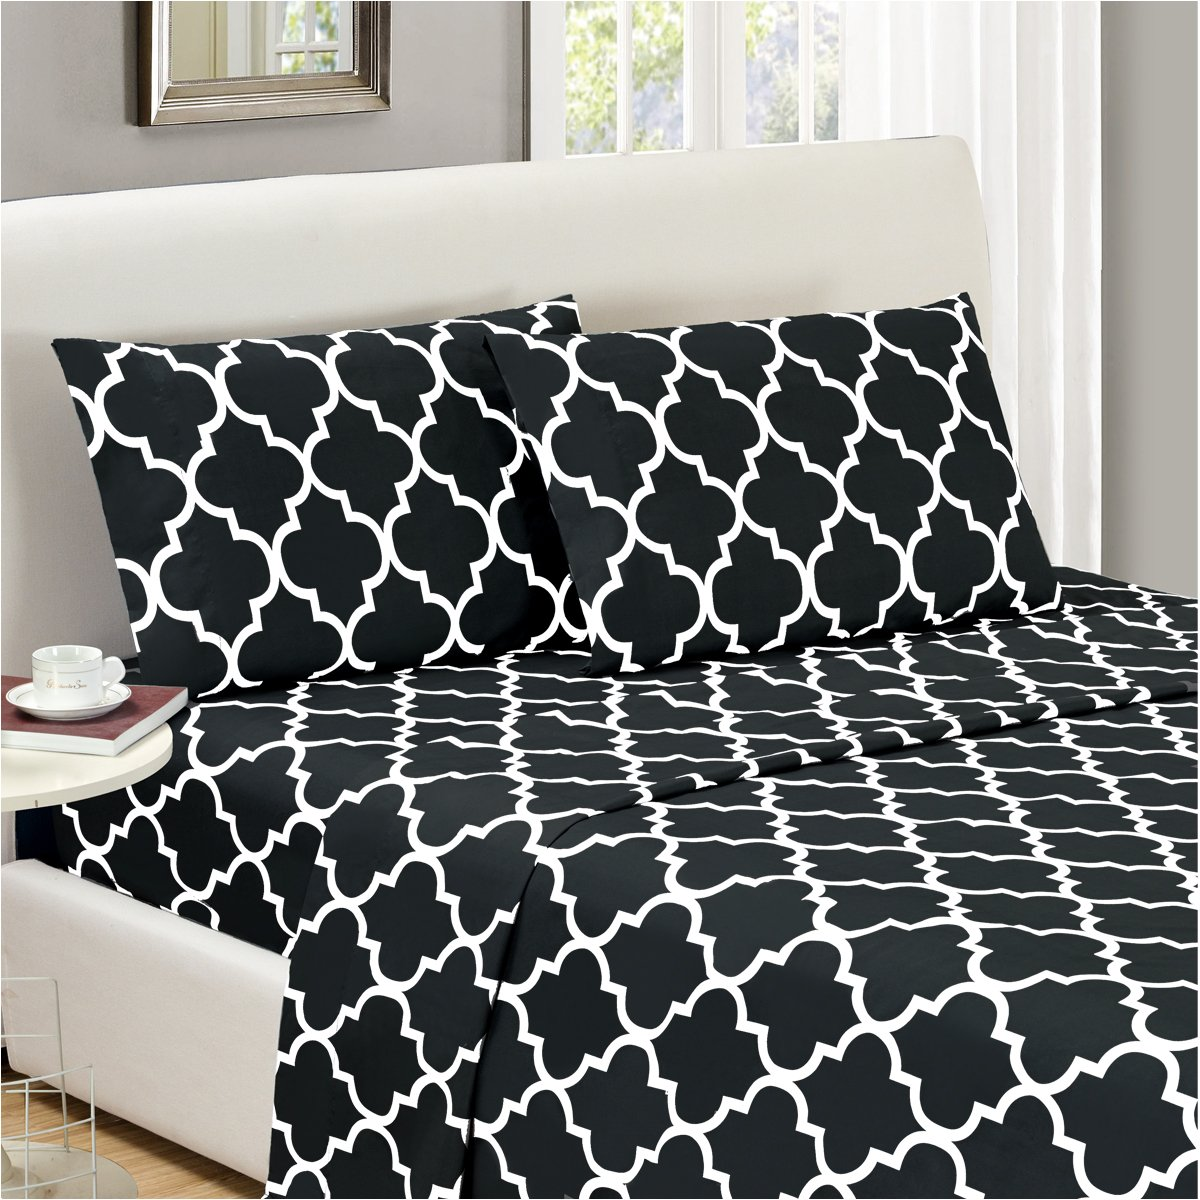 4 Piece King, Quatrefoil Black